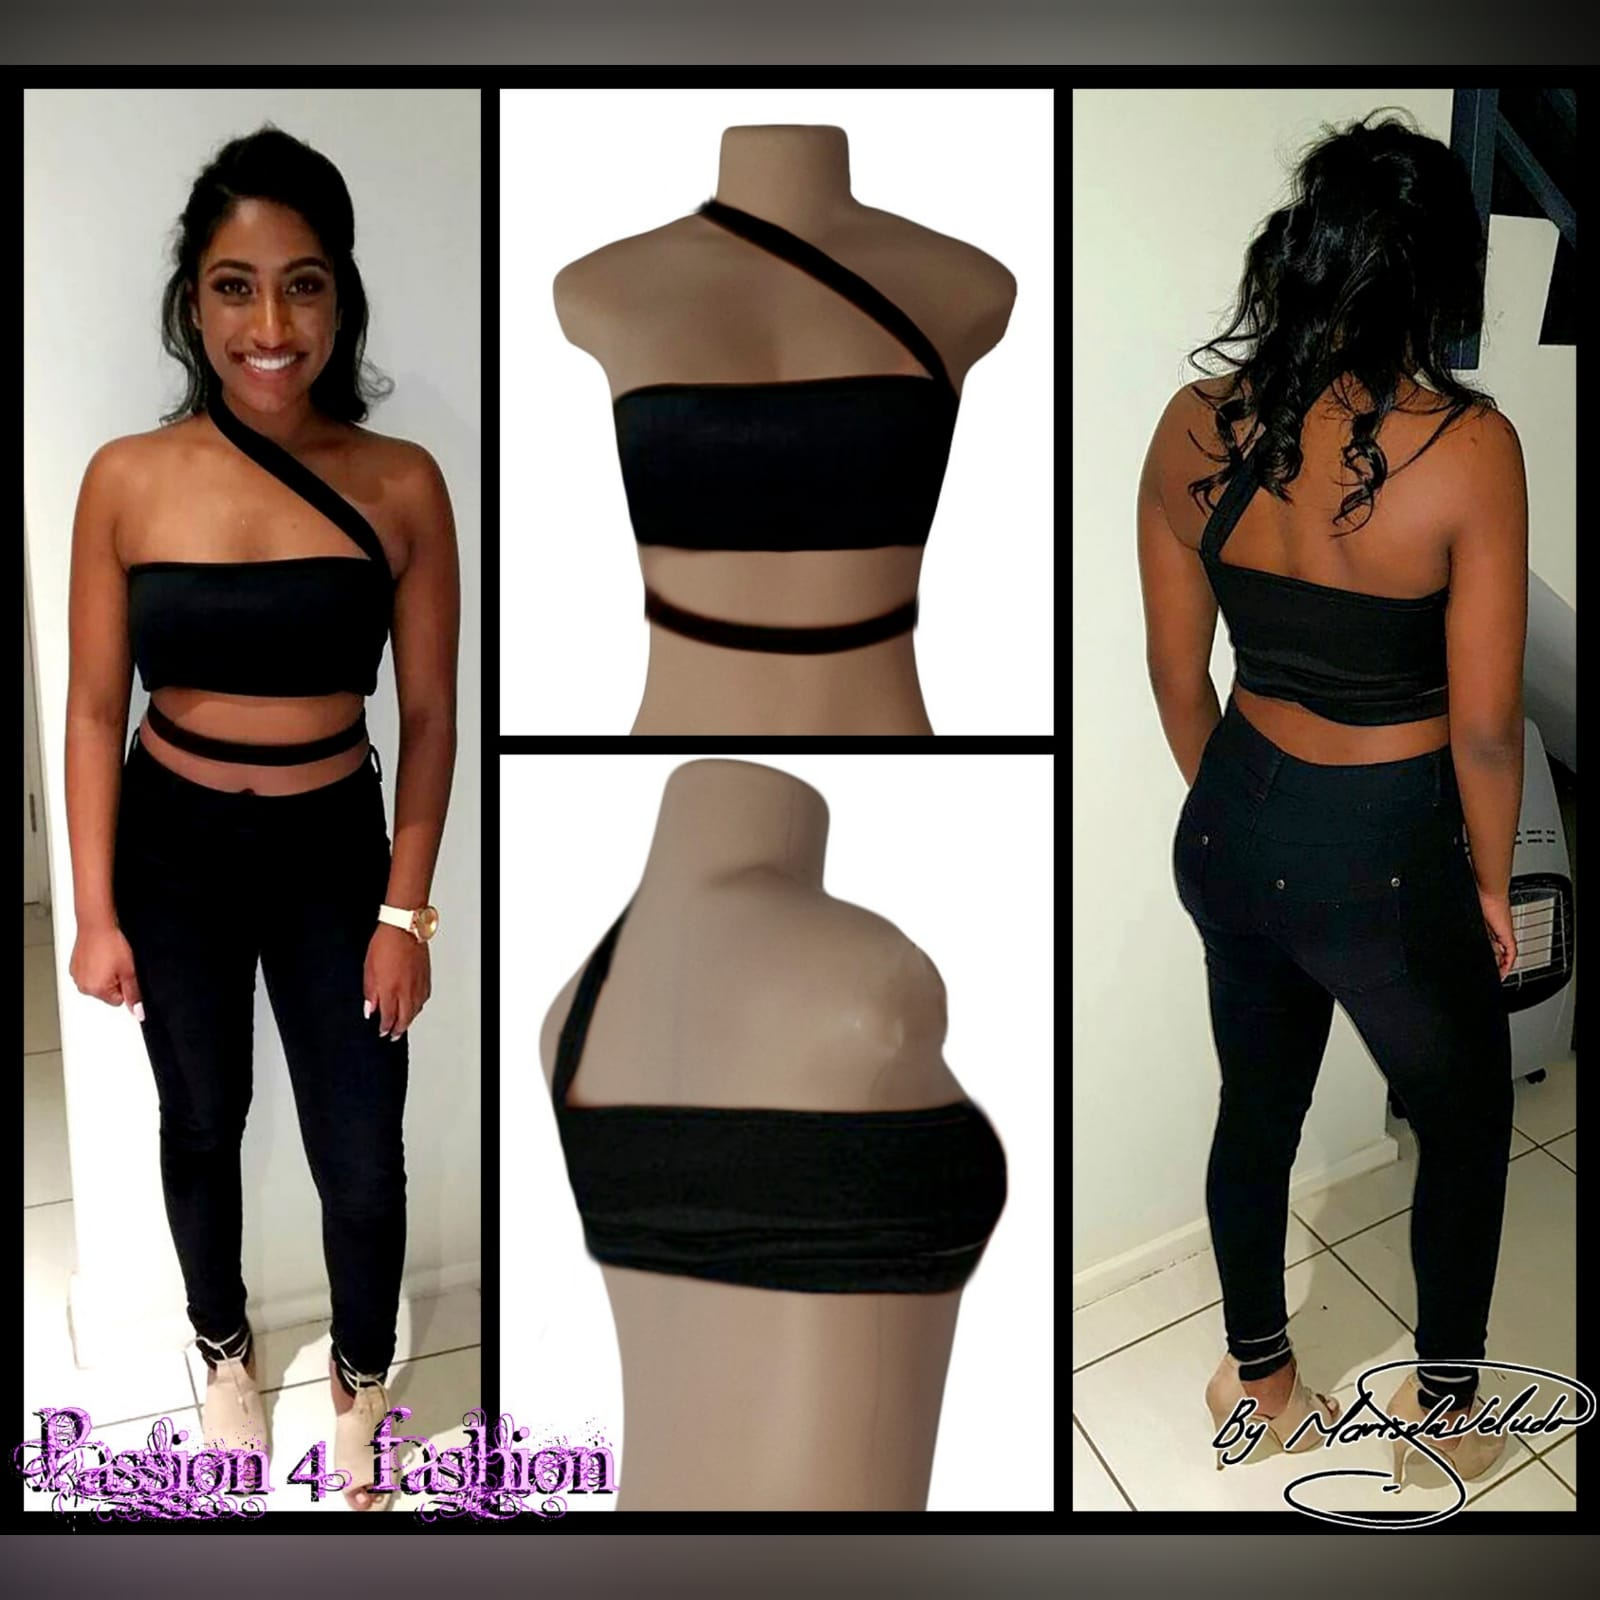 Black boob tube casual top 2 black boobtube casual top with strap detail on tummy and angular strap over the shoulder